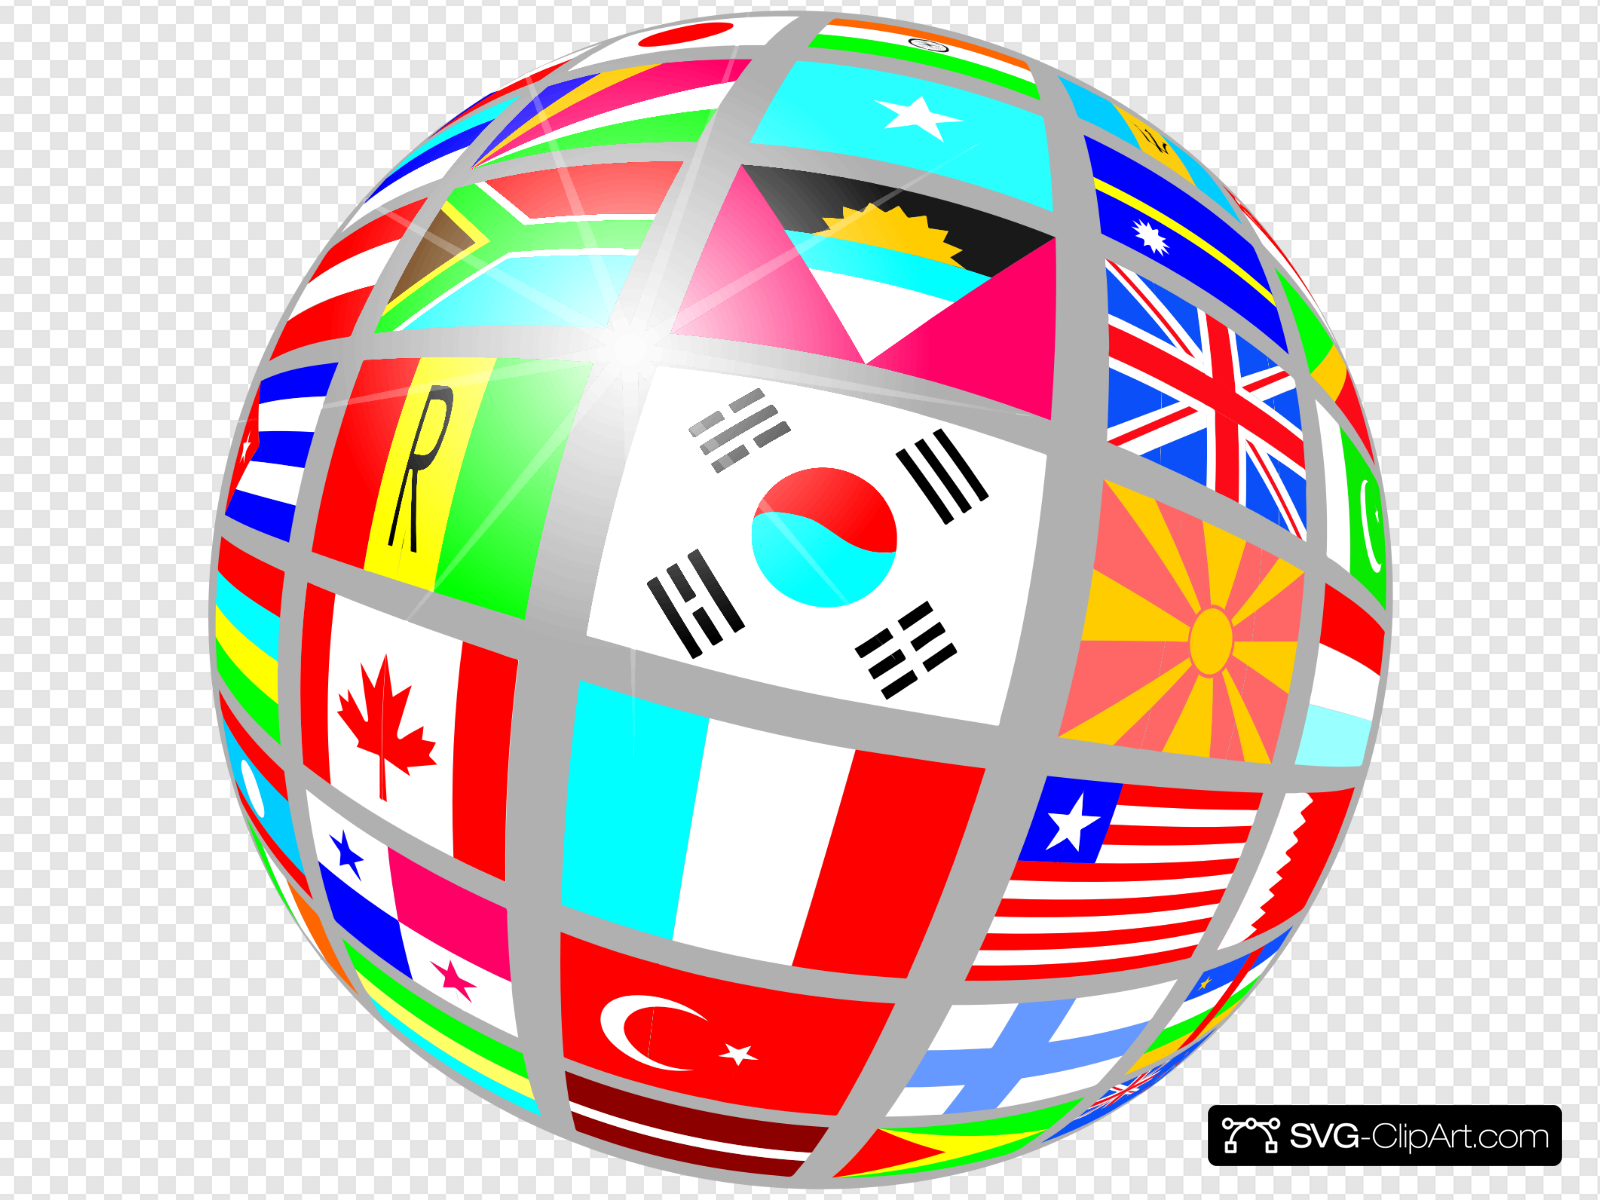 Globe with flags clipart png free stock Globe Of Flags Clip art, Icon and SVG - SVG Clipart png free stock